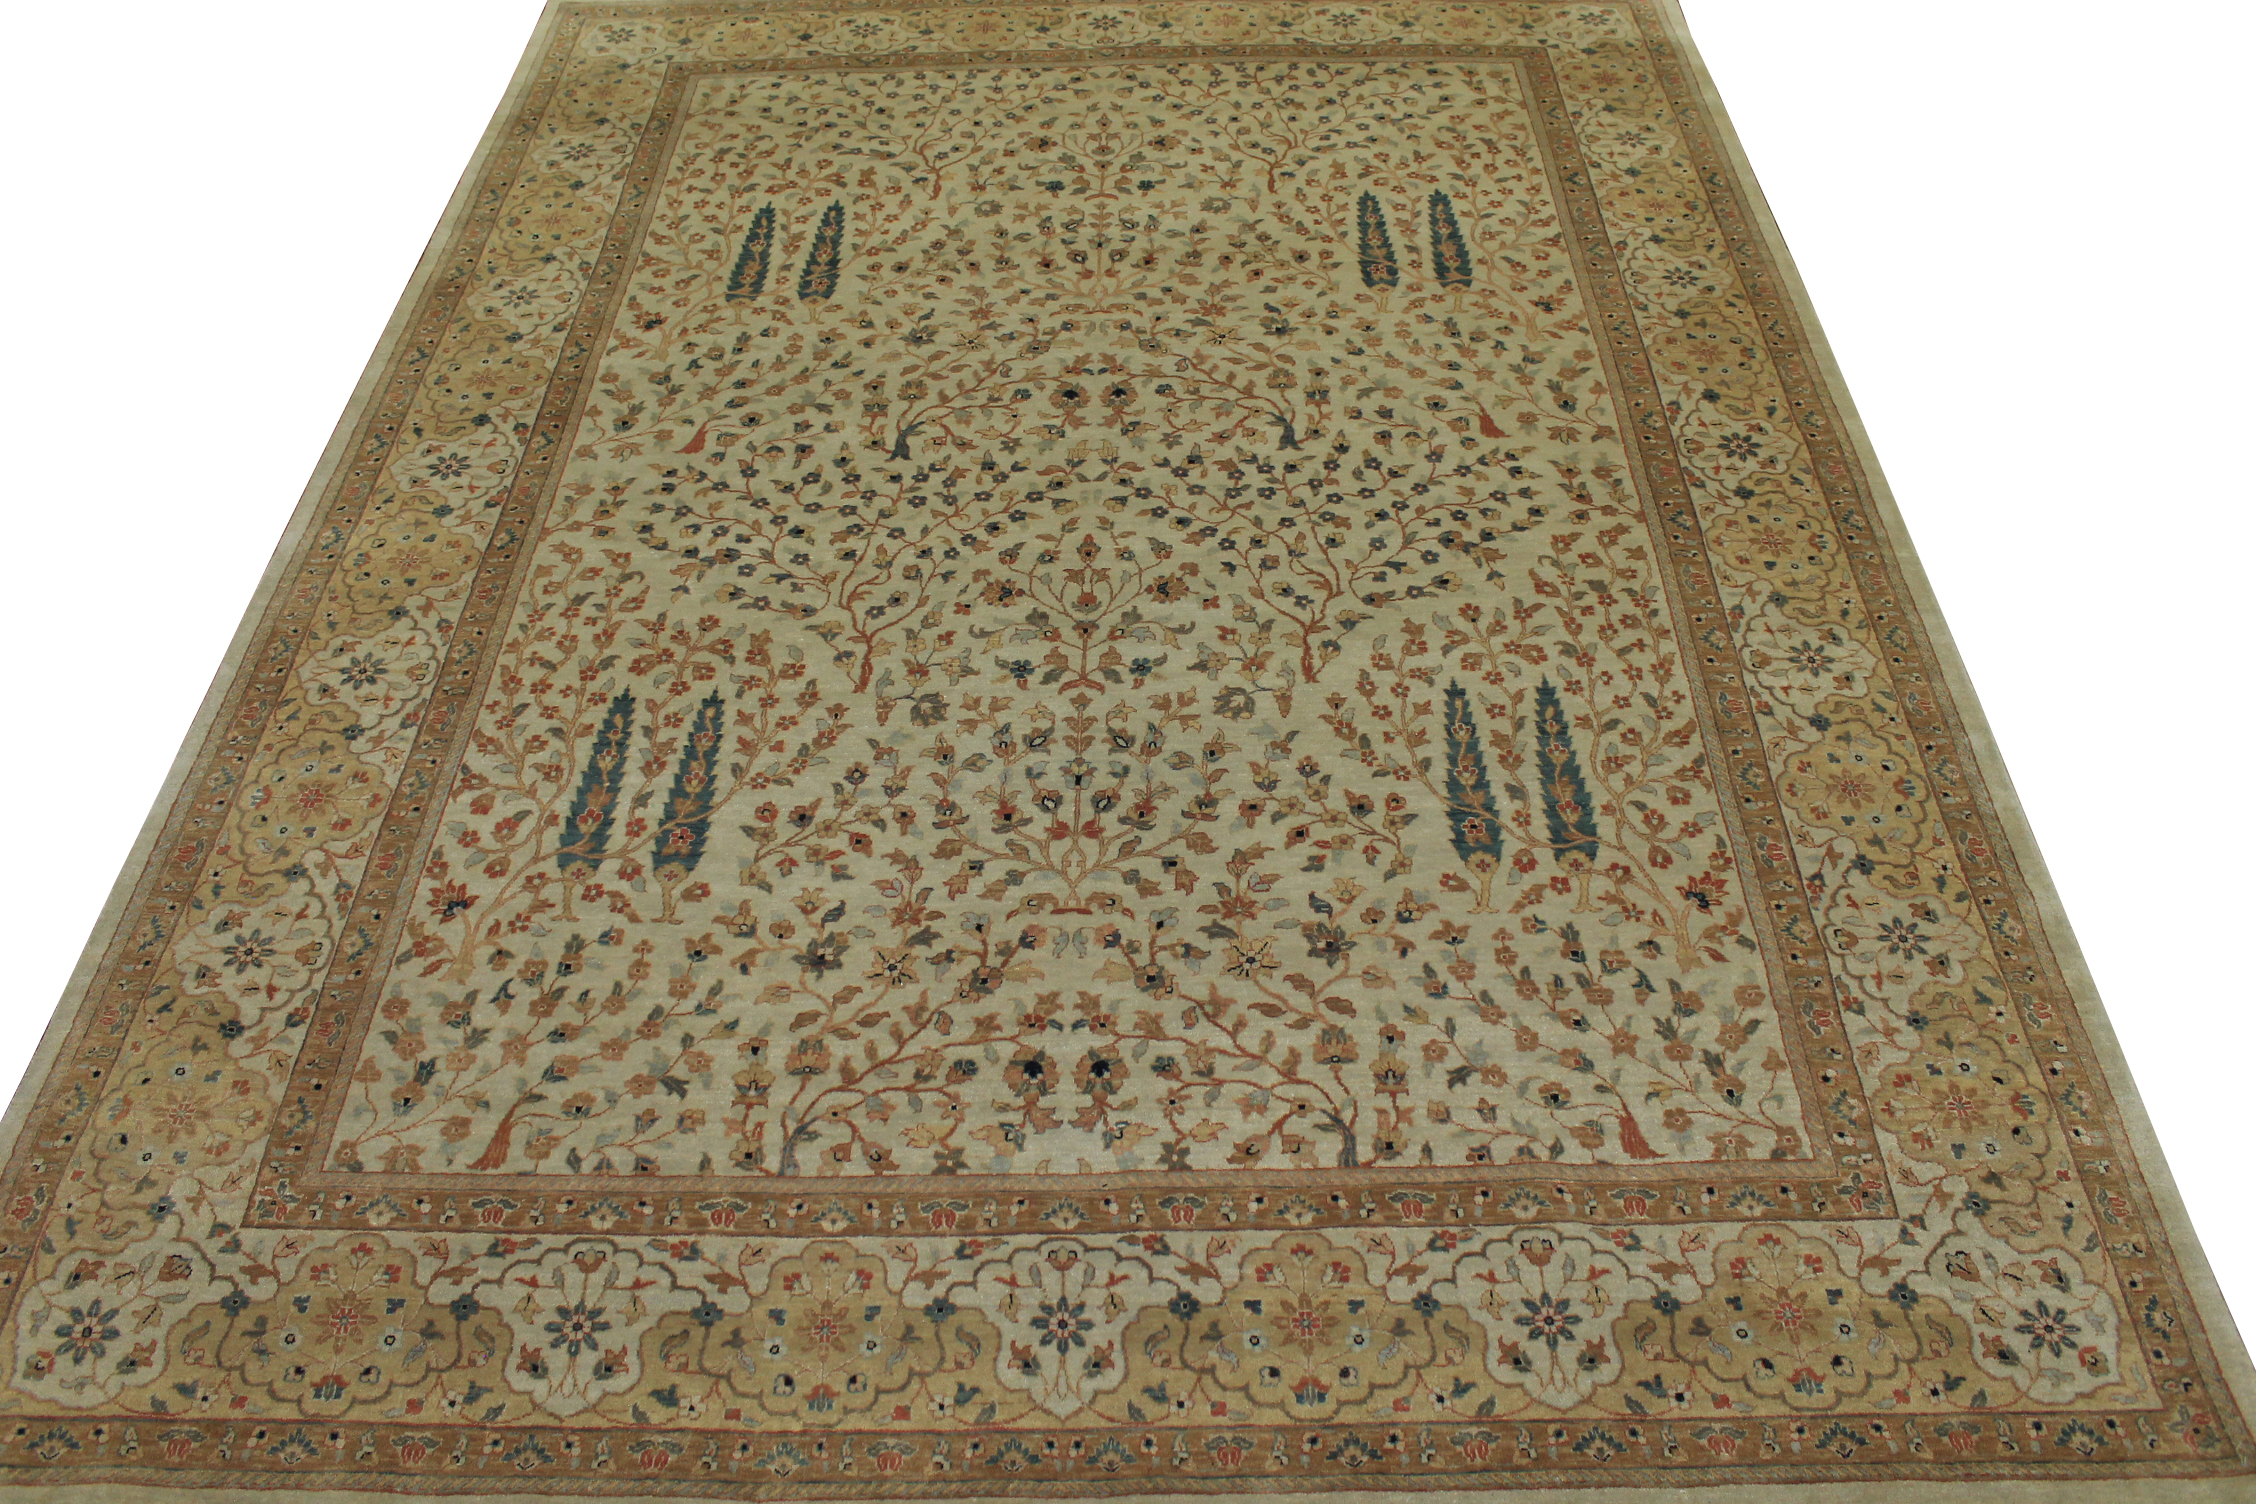 9x12 Traditional Hand Knotted Wool Area Rug - MR6102